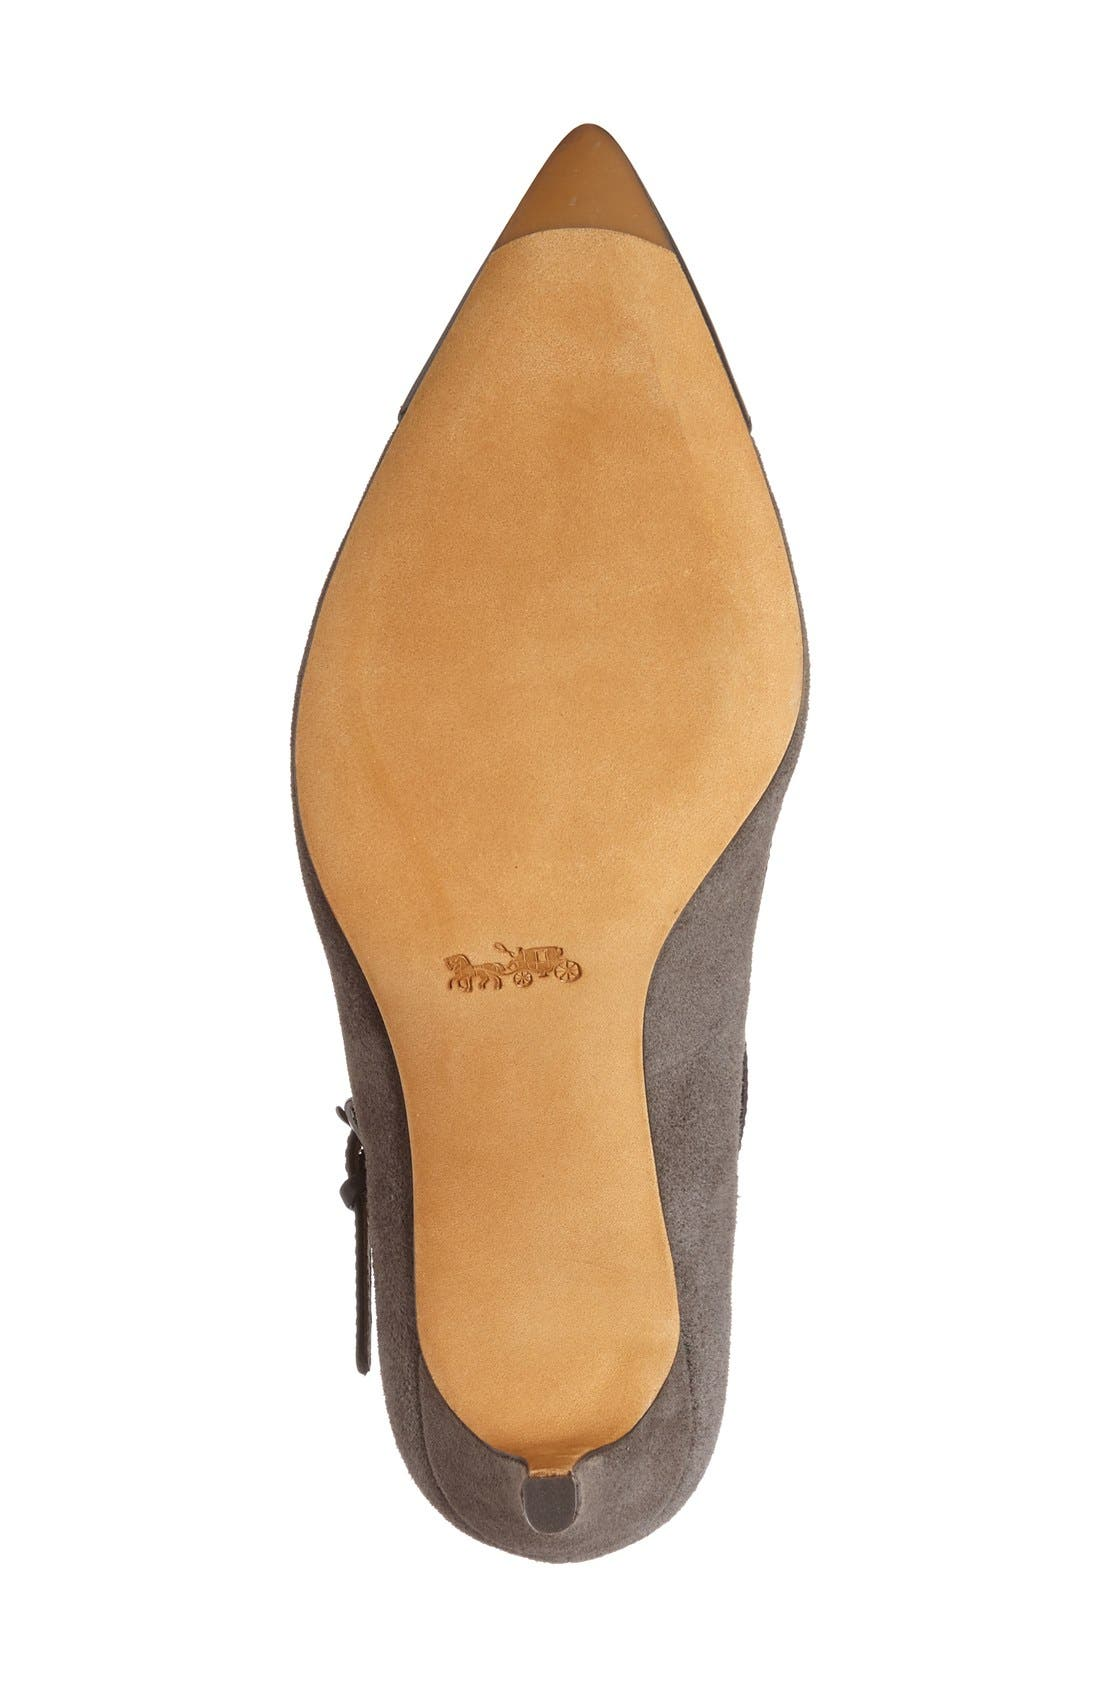 'Smith' Mary Jane Pump,                             Alternate thumbnail 4, color,                             Mink/ Black Suede